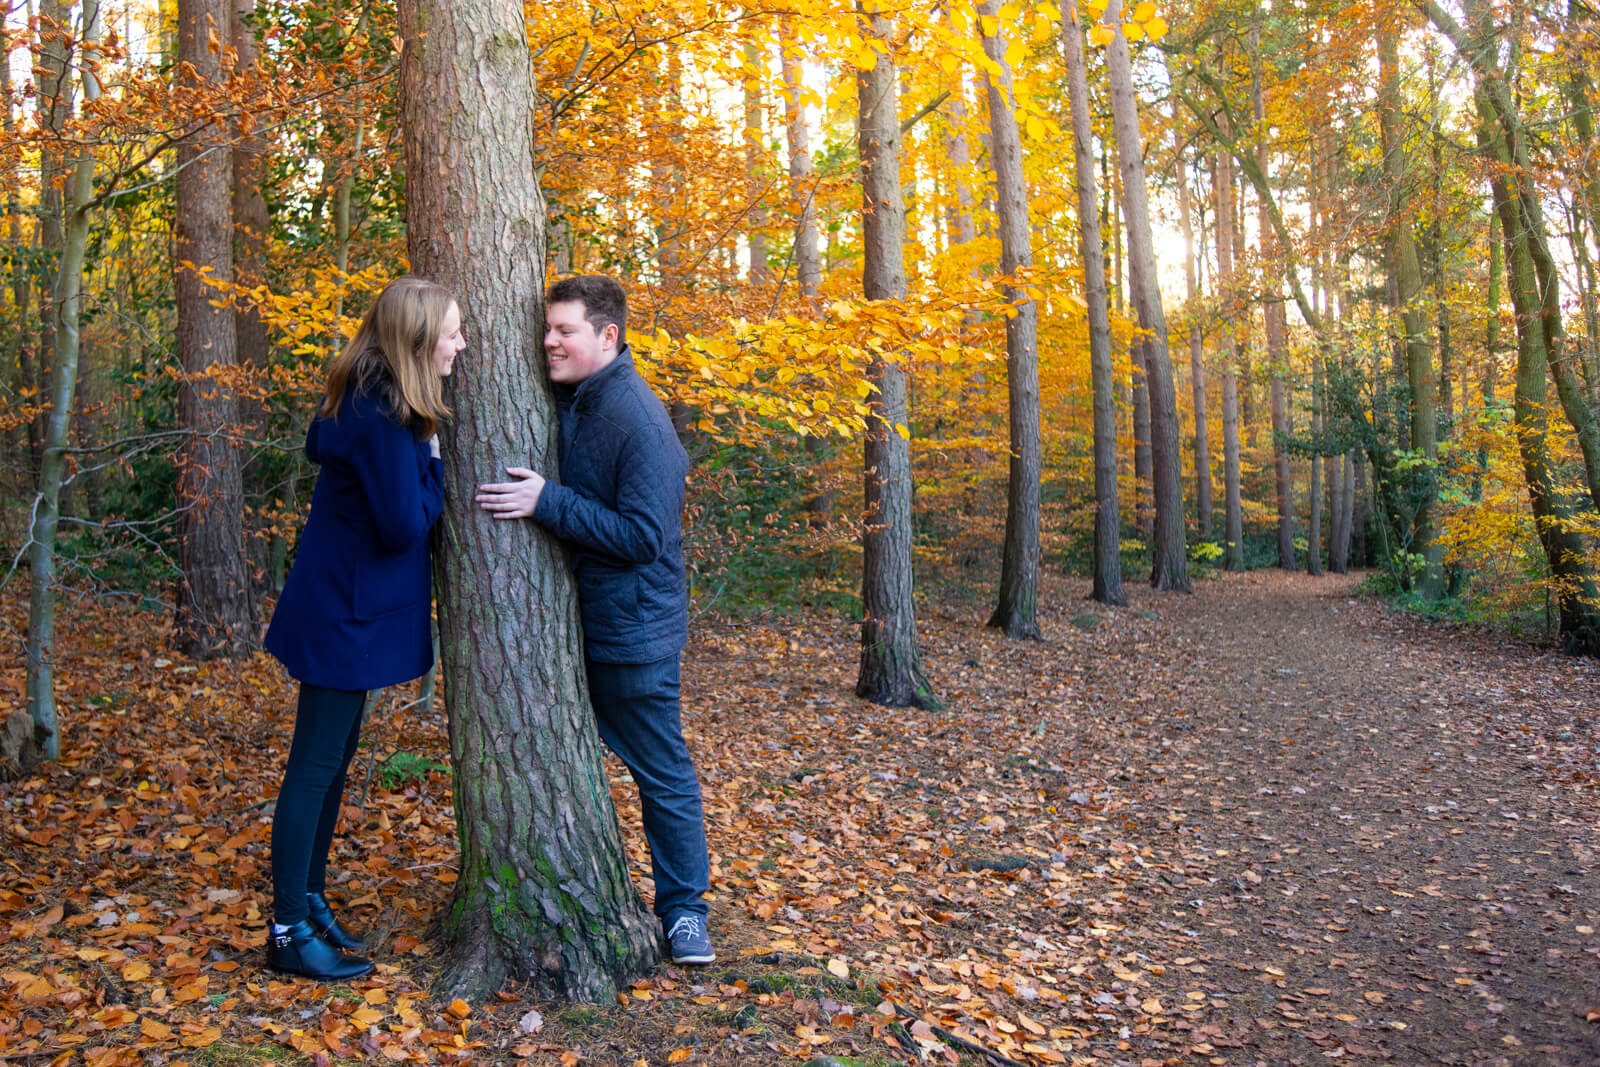 Young couple peeking around a tree trunk at each other